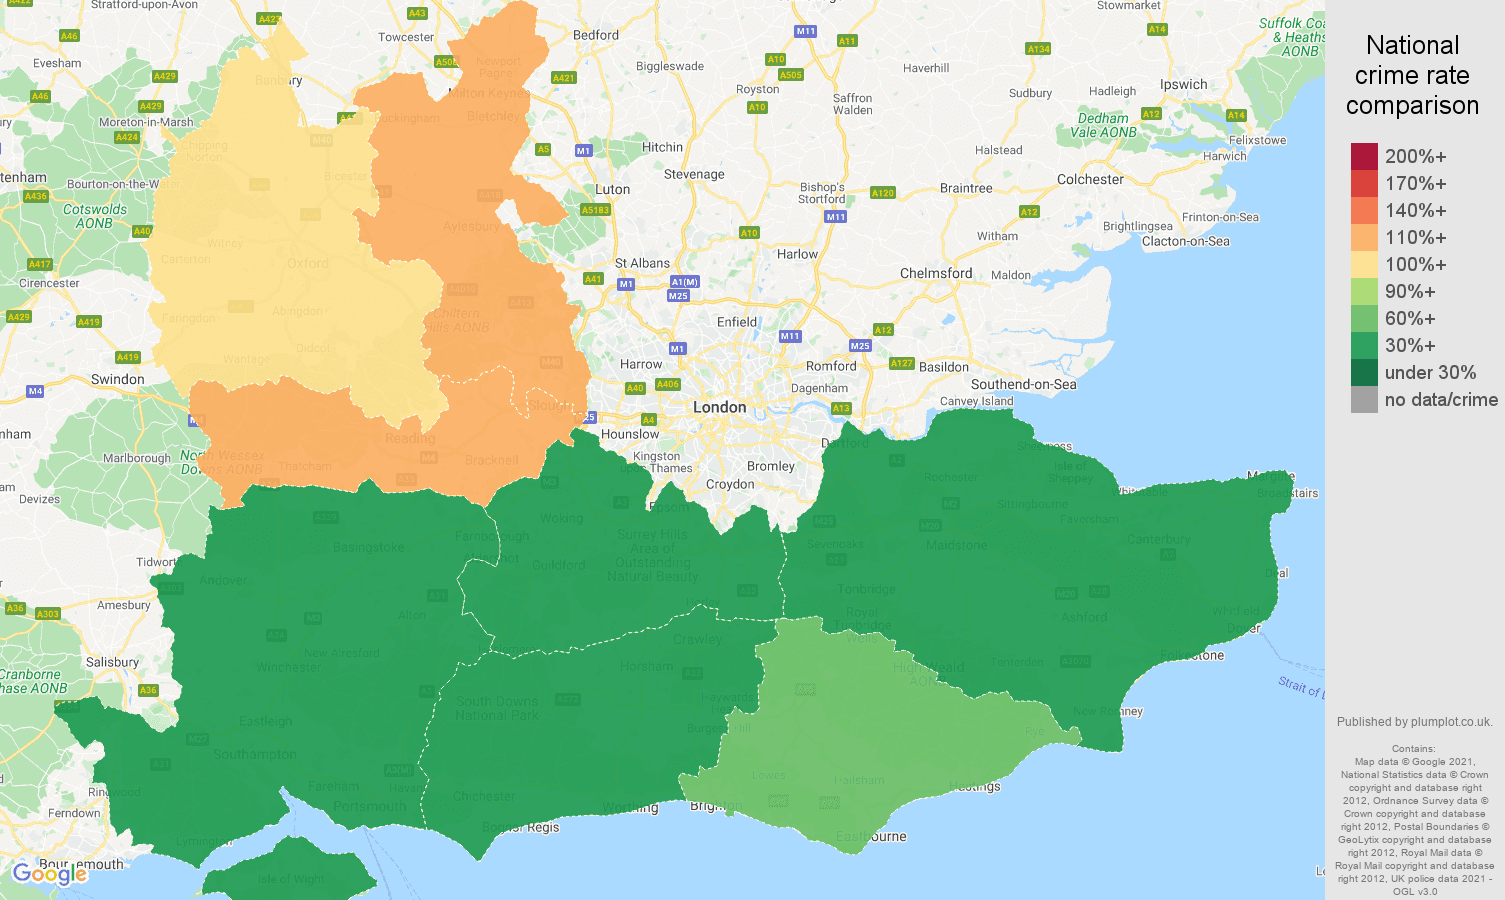 South East theft from the person crime rate comparison map